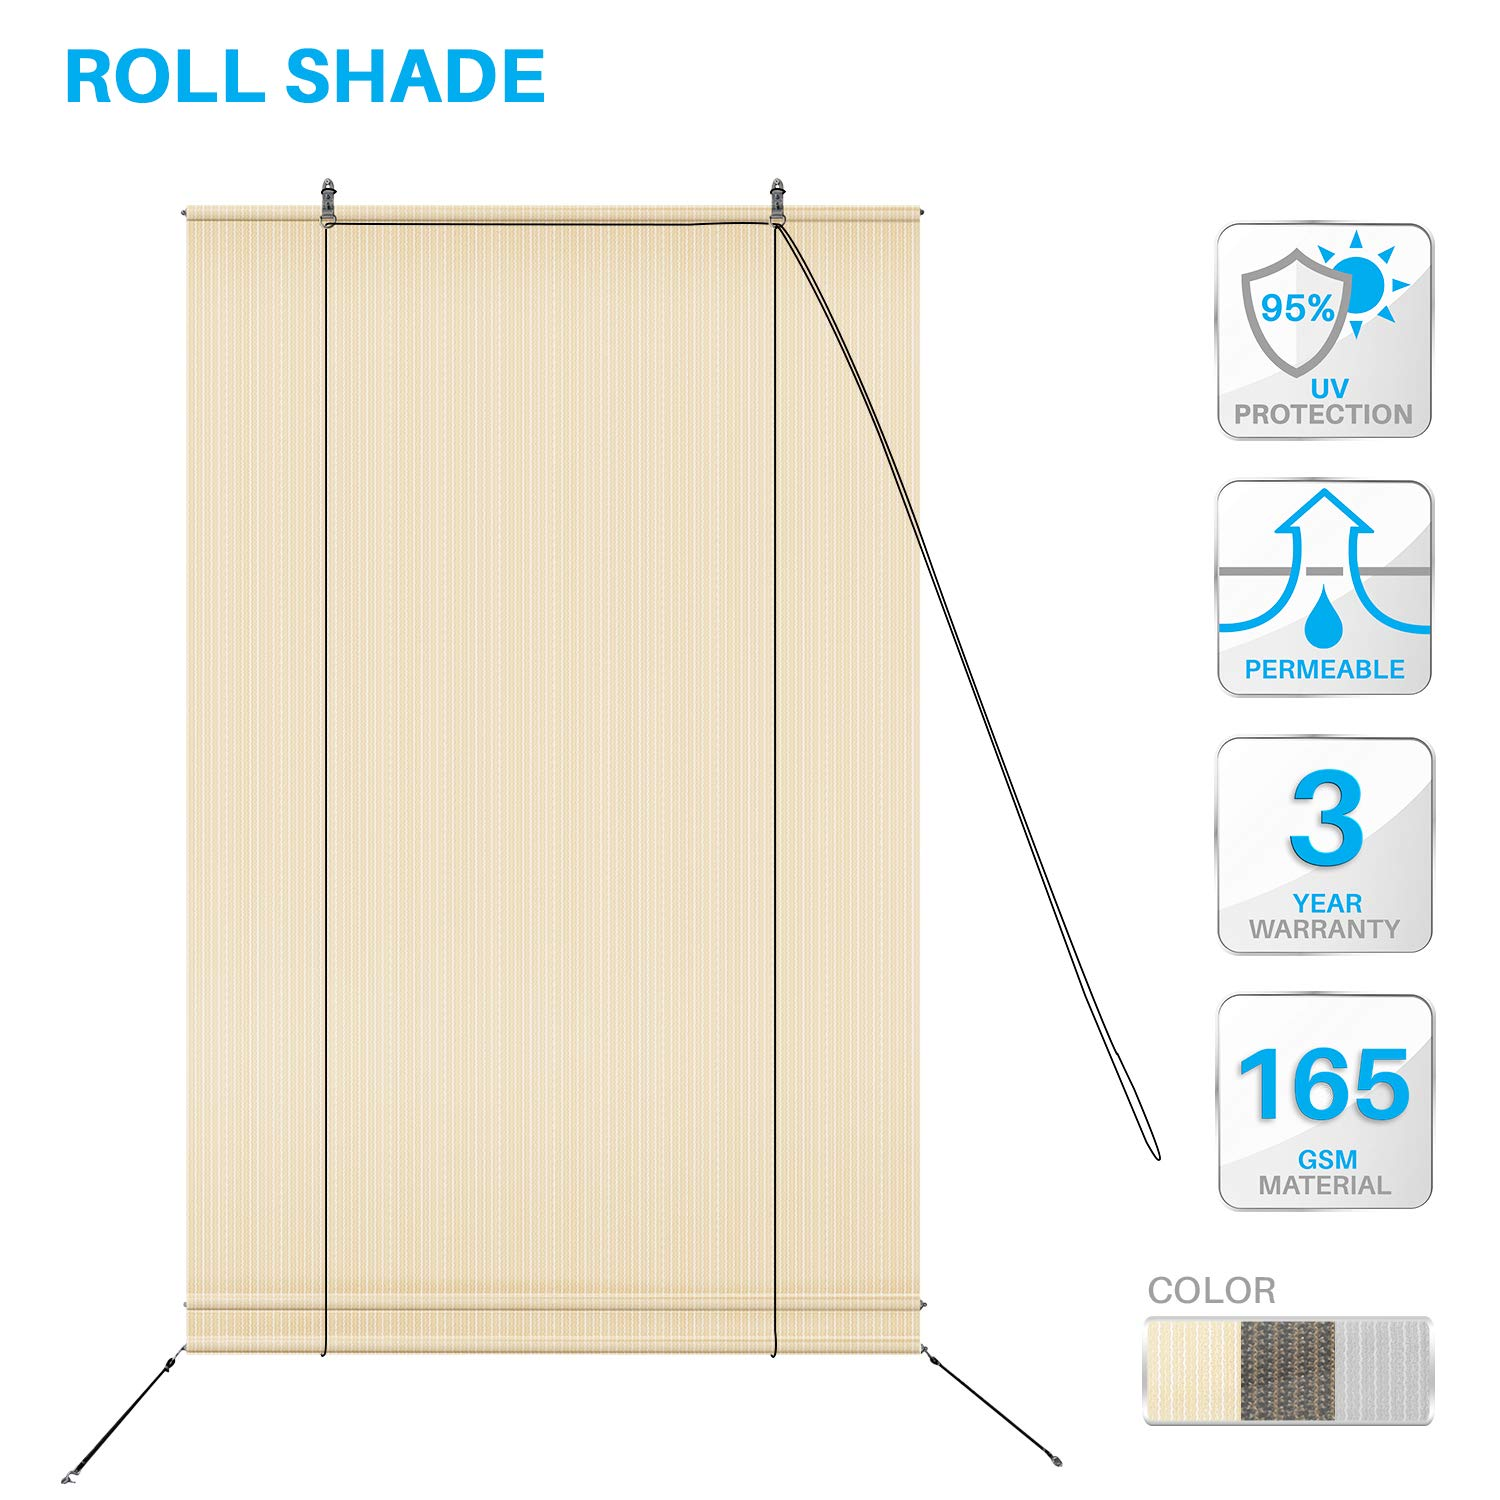 PATIO Paradise Roll up Shades Roller Shade 7'Wx6.5'H Outdoor Shade Blind Pull Shade Privacy Screen Porch Deck Balcony Pergola Trellis Carport Beige